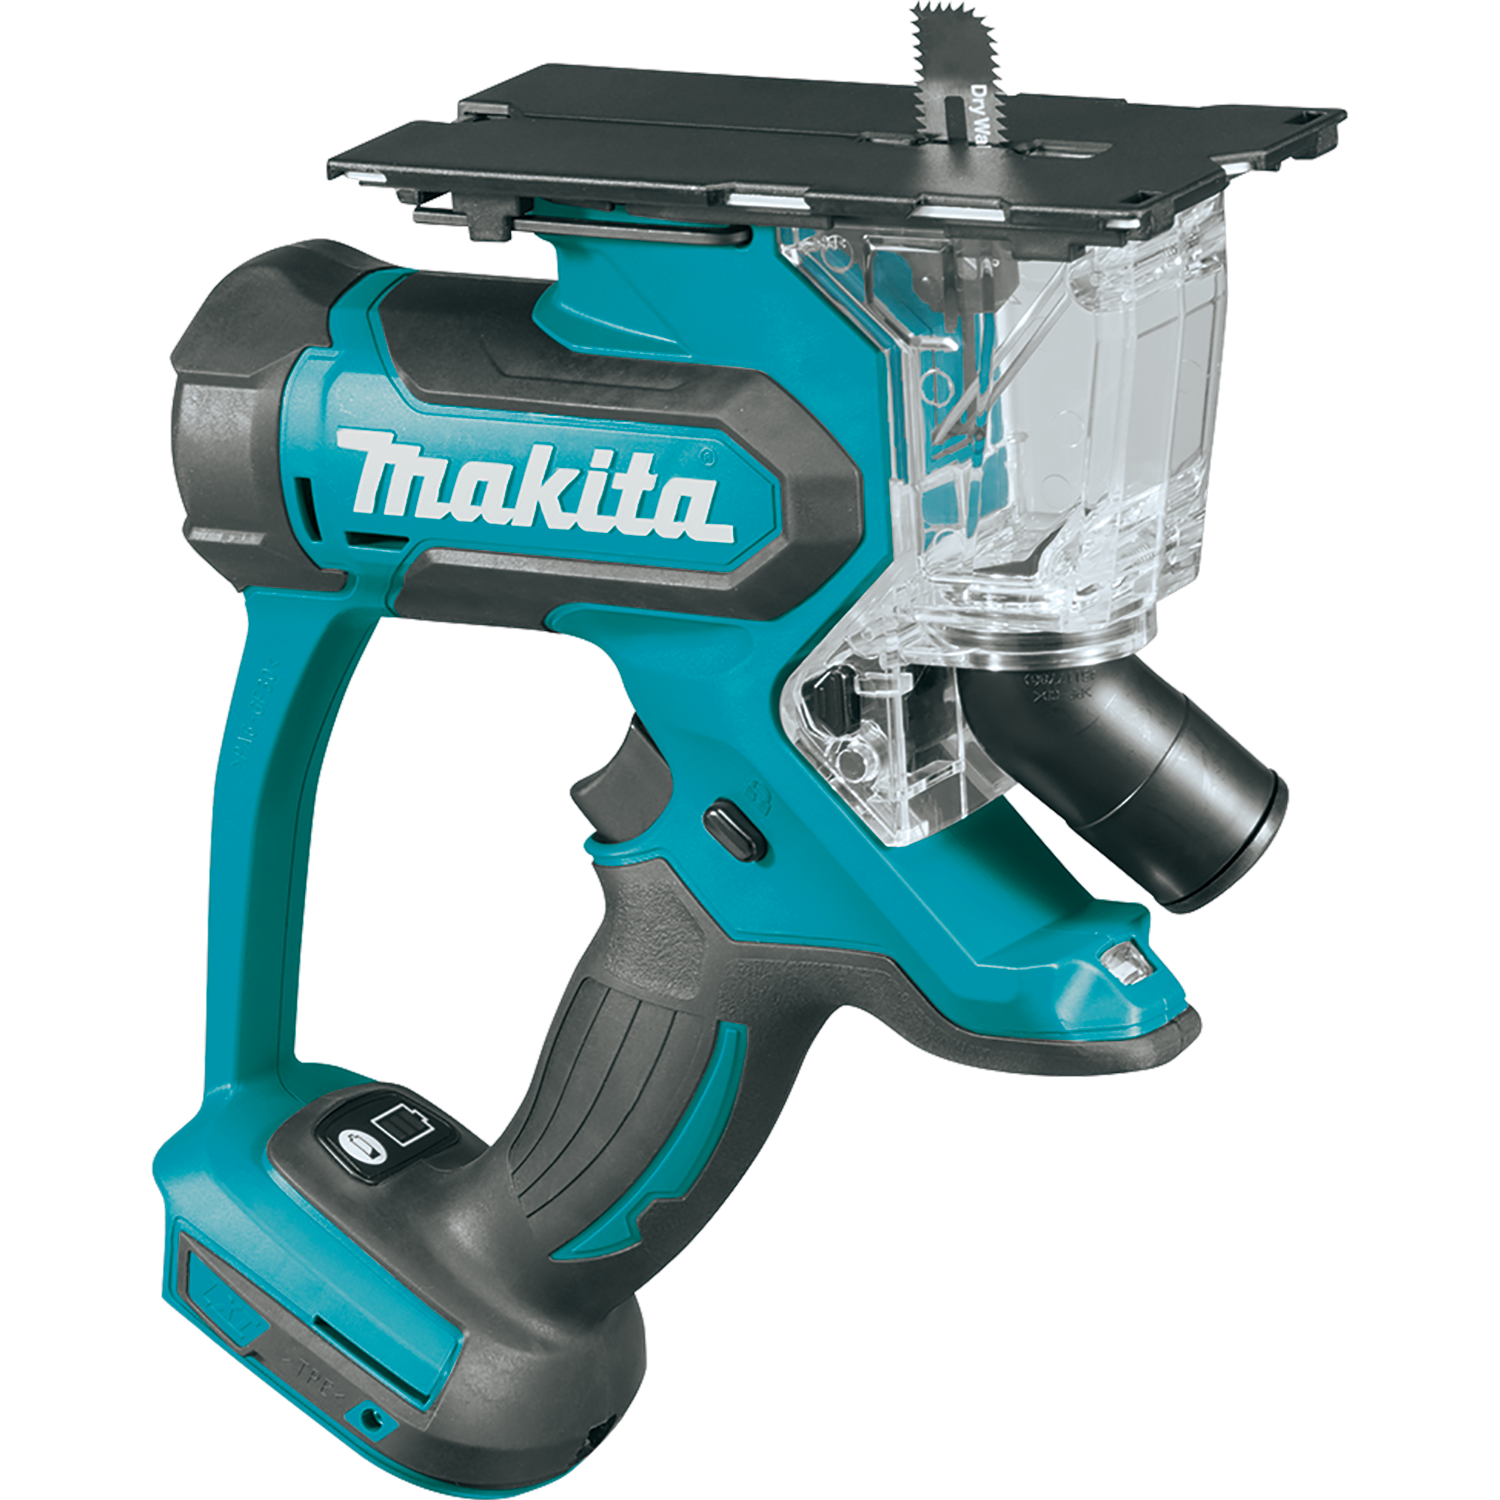 Makita Usa Product Details Xds01z